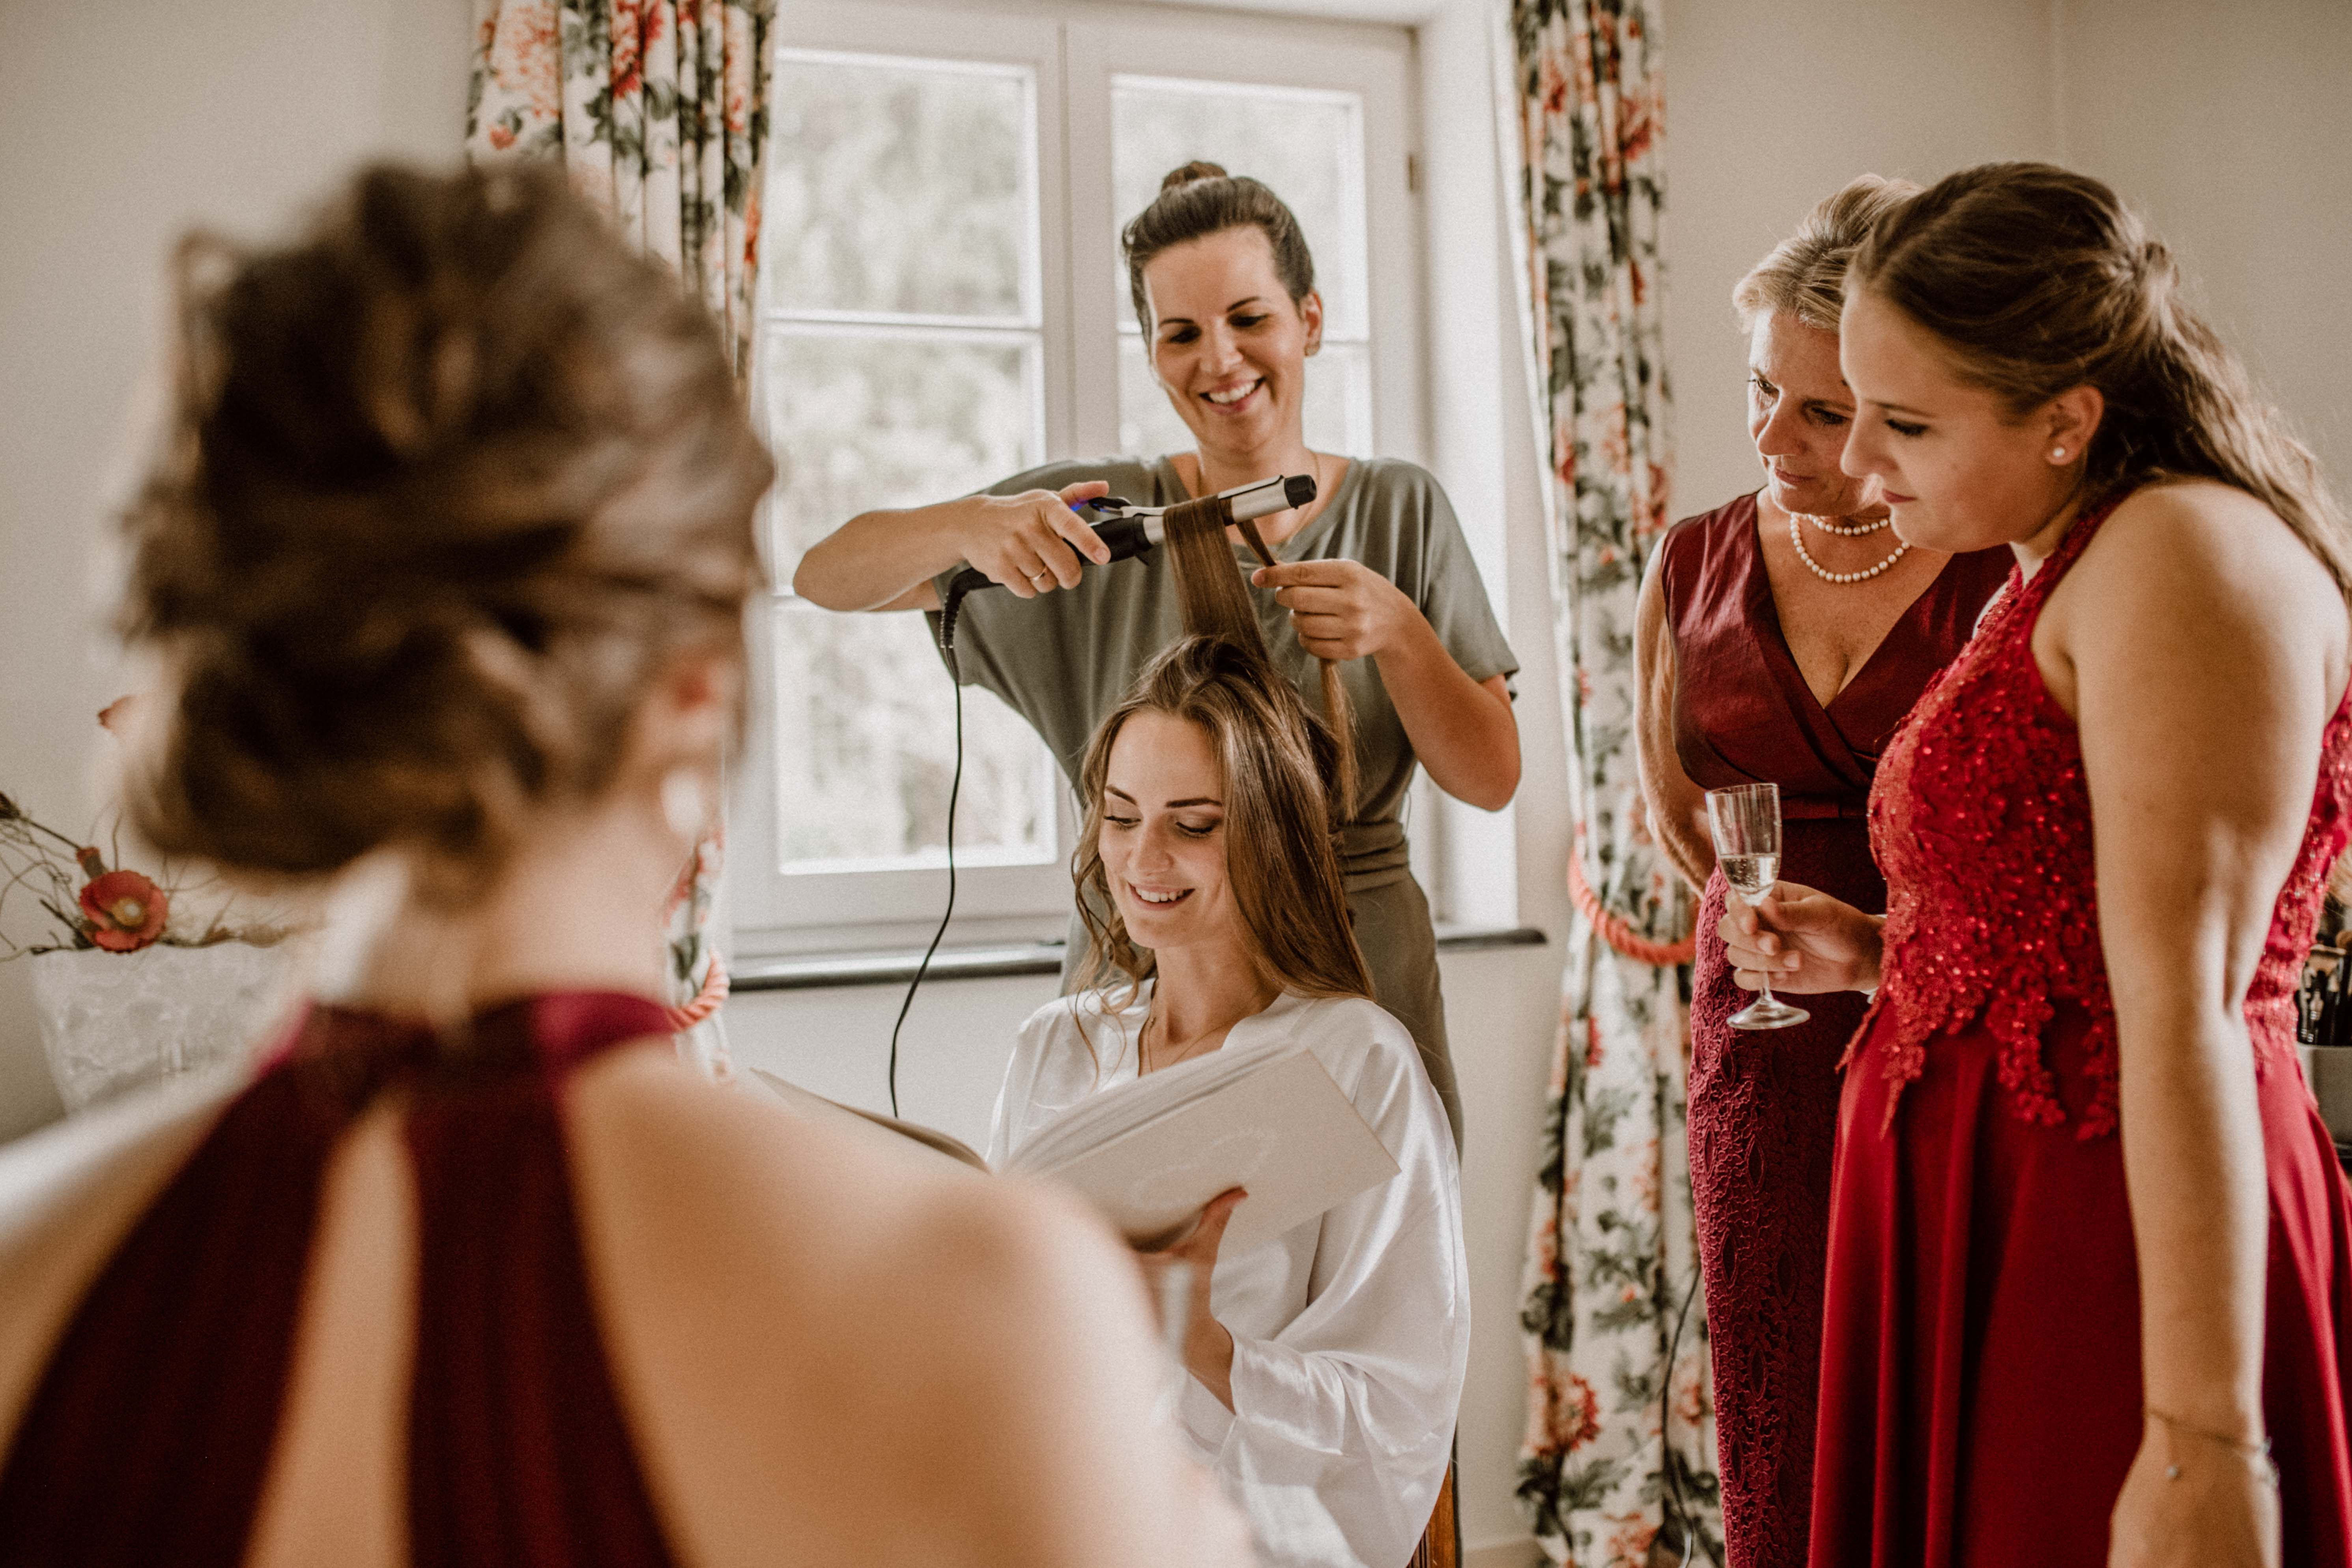 spaß getting ready sonja poehlmann photography couples muenchen bayern